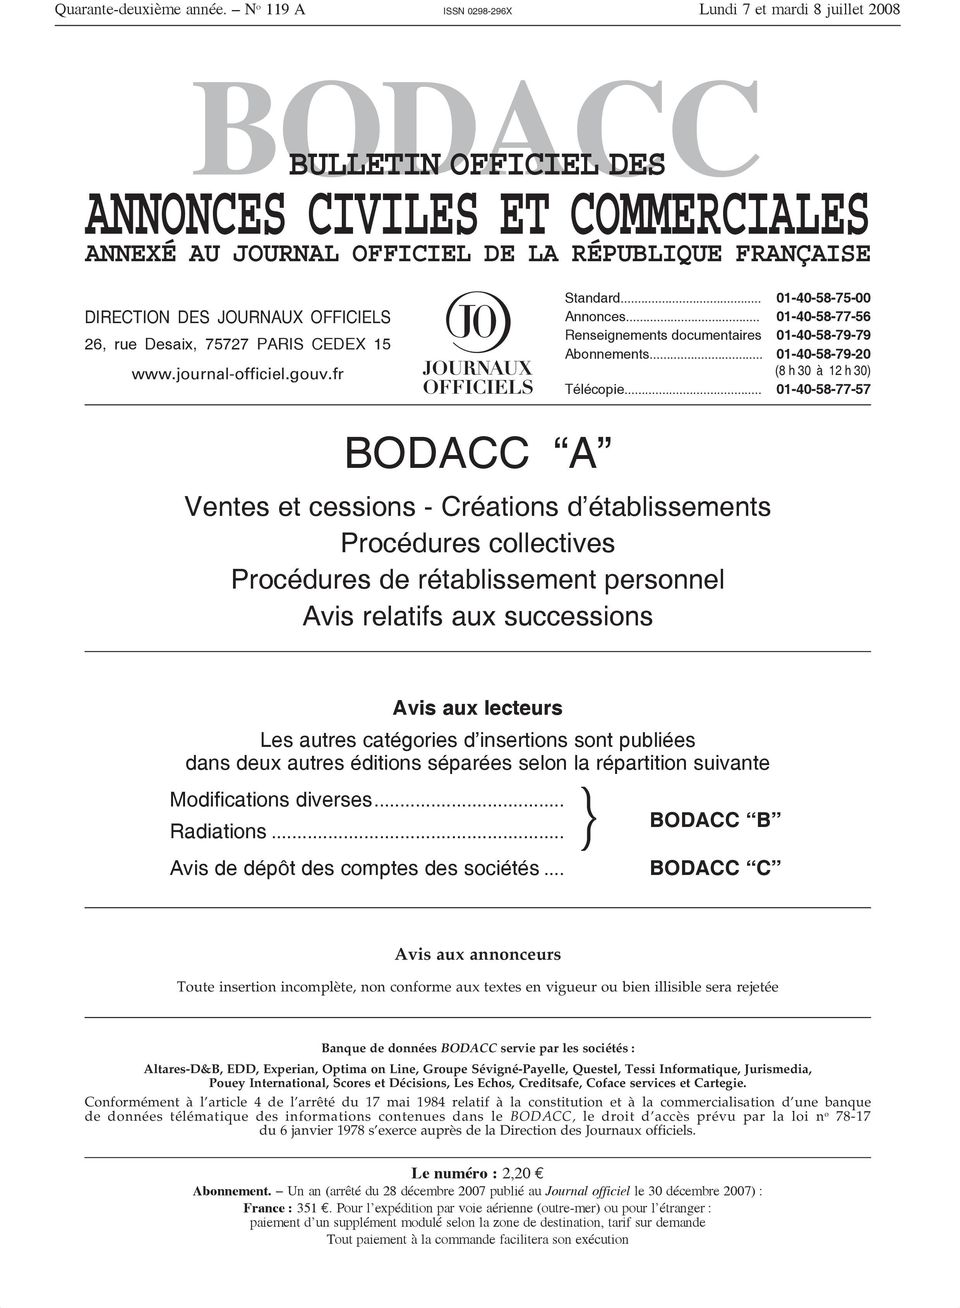 OFFICIELS 26, rue Desaix, 75727 PARIS CEDEX 15 www.journal-officiel.gouv.fr Standard... 01-40-58-75-00 Annonces... 01-40-58-77-56 Renseignements documentaires 01-40-58-79-79 Abonnements.